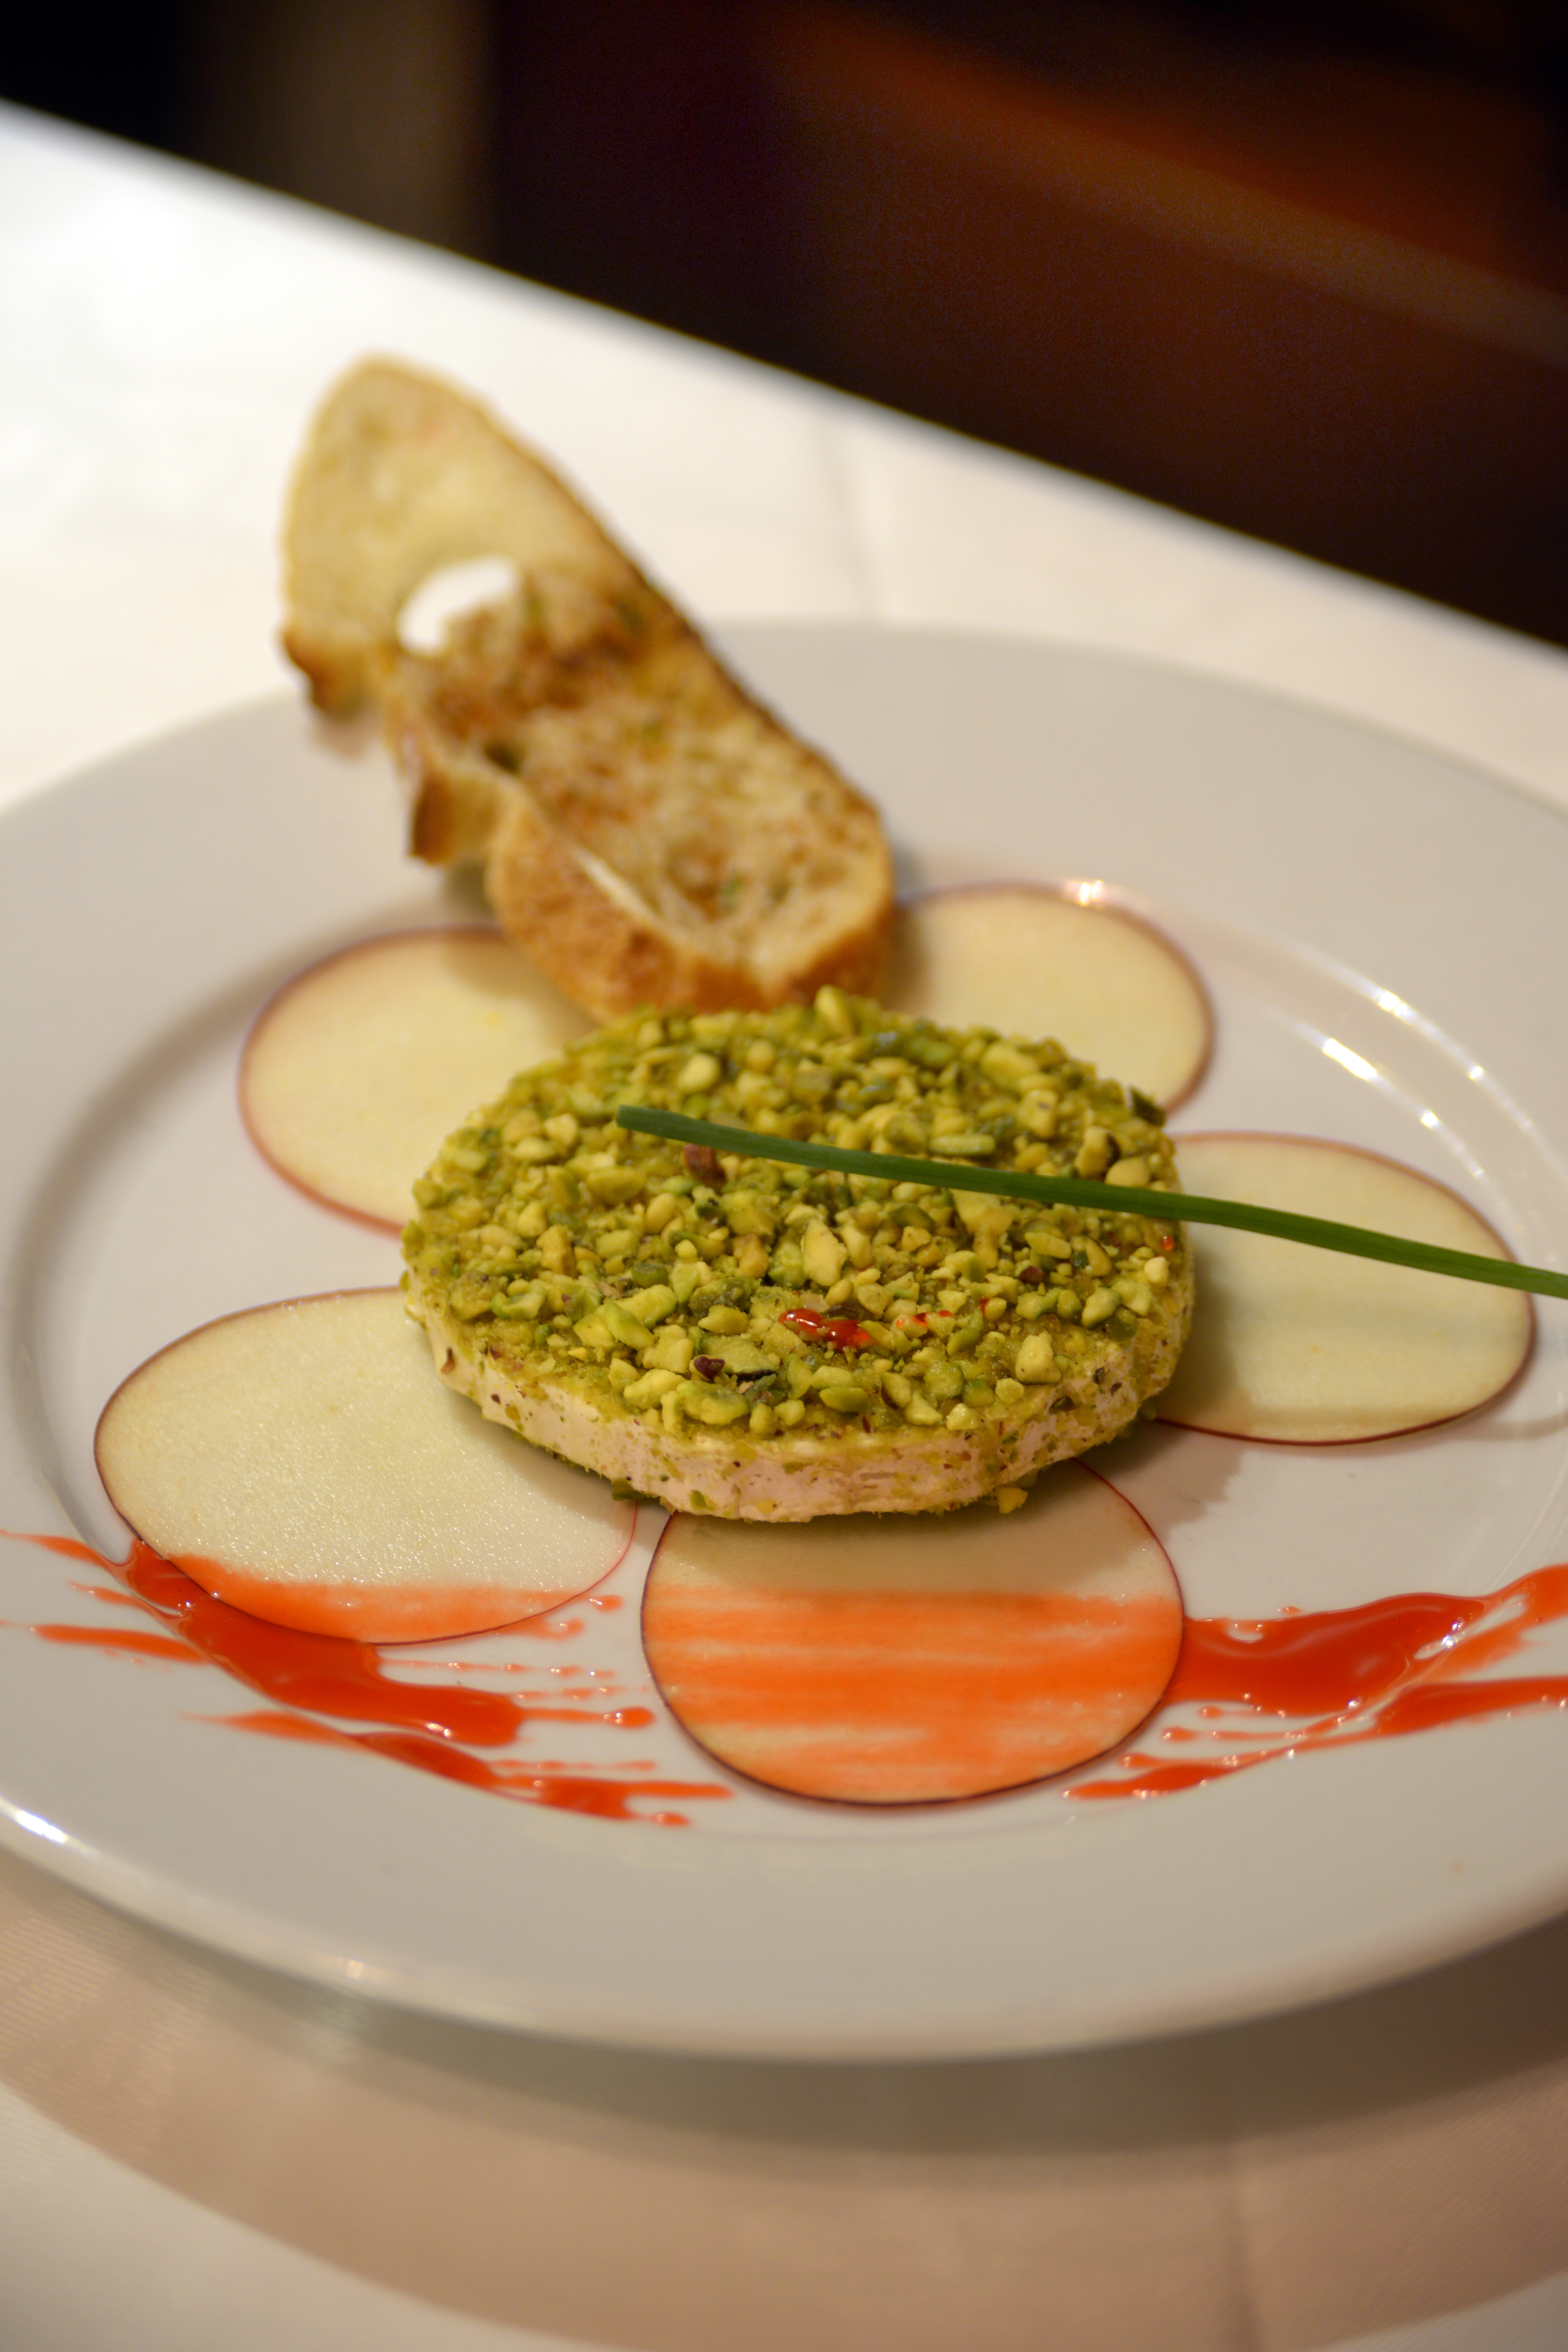 Seared Goat Cheese and Pistachio